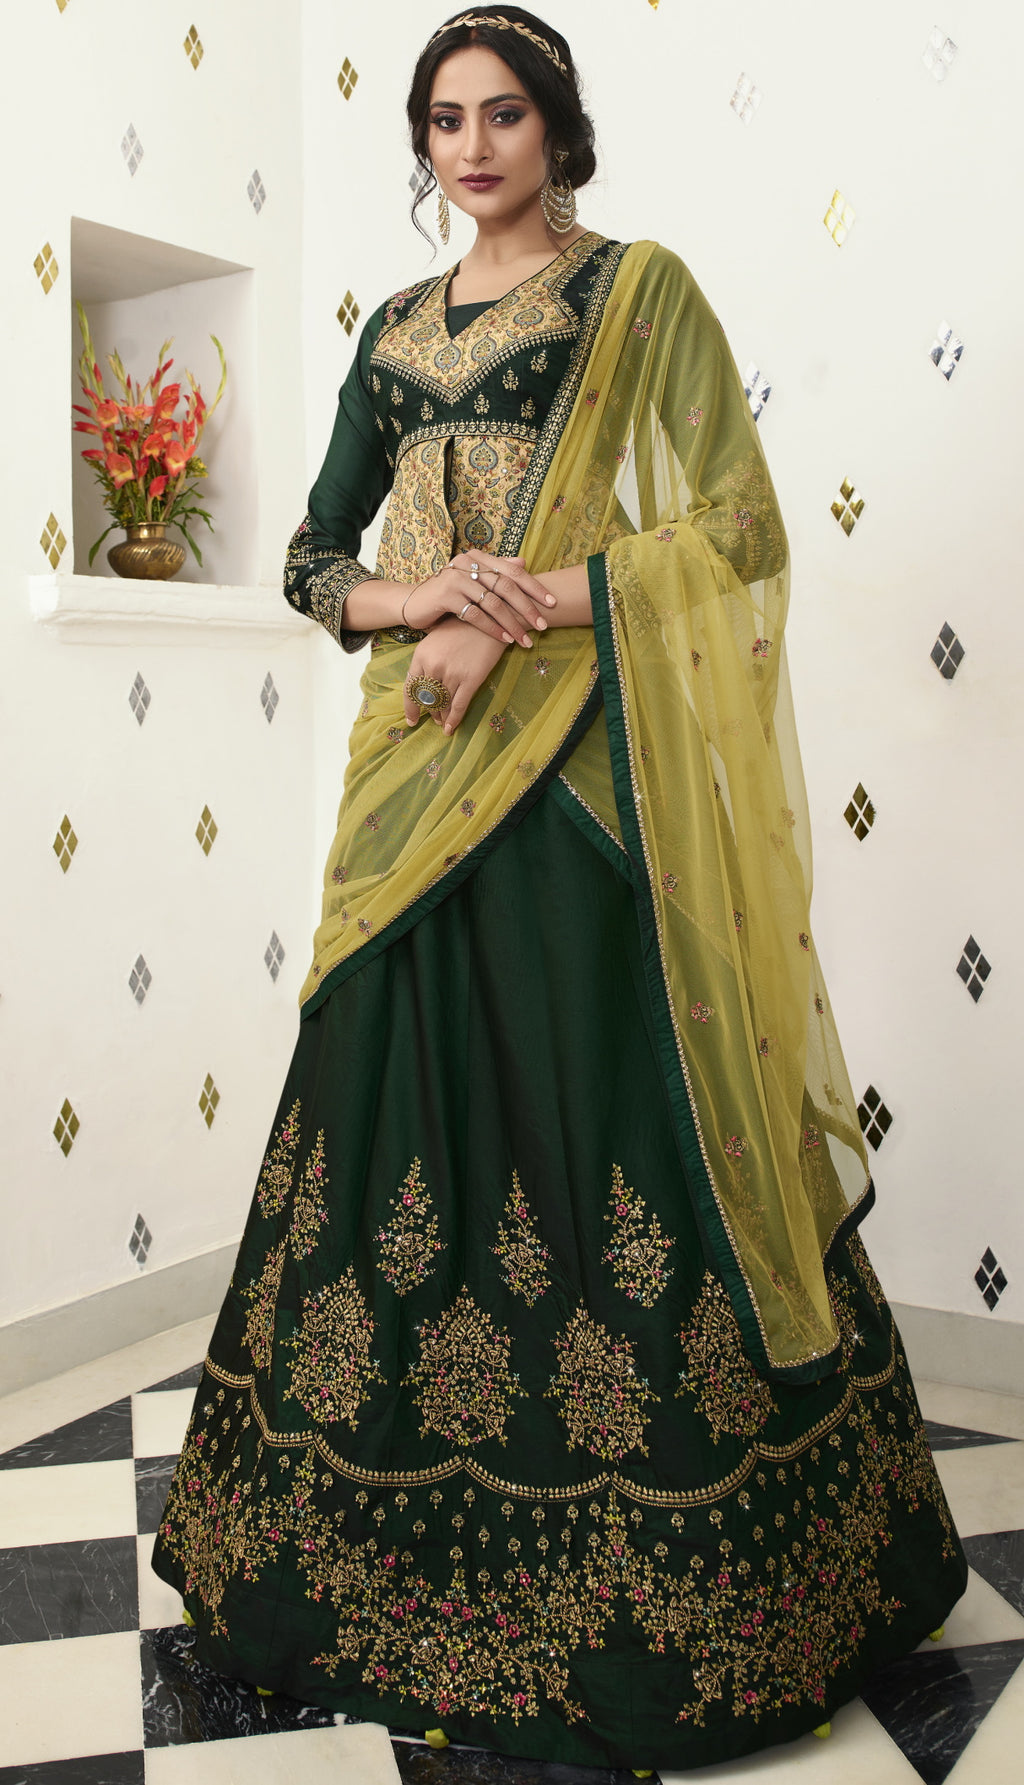 Bottle Green Color Raw Silk Exquisite Party Wear Lehengas NYF-6175